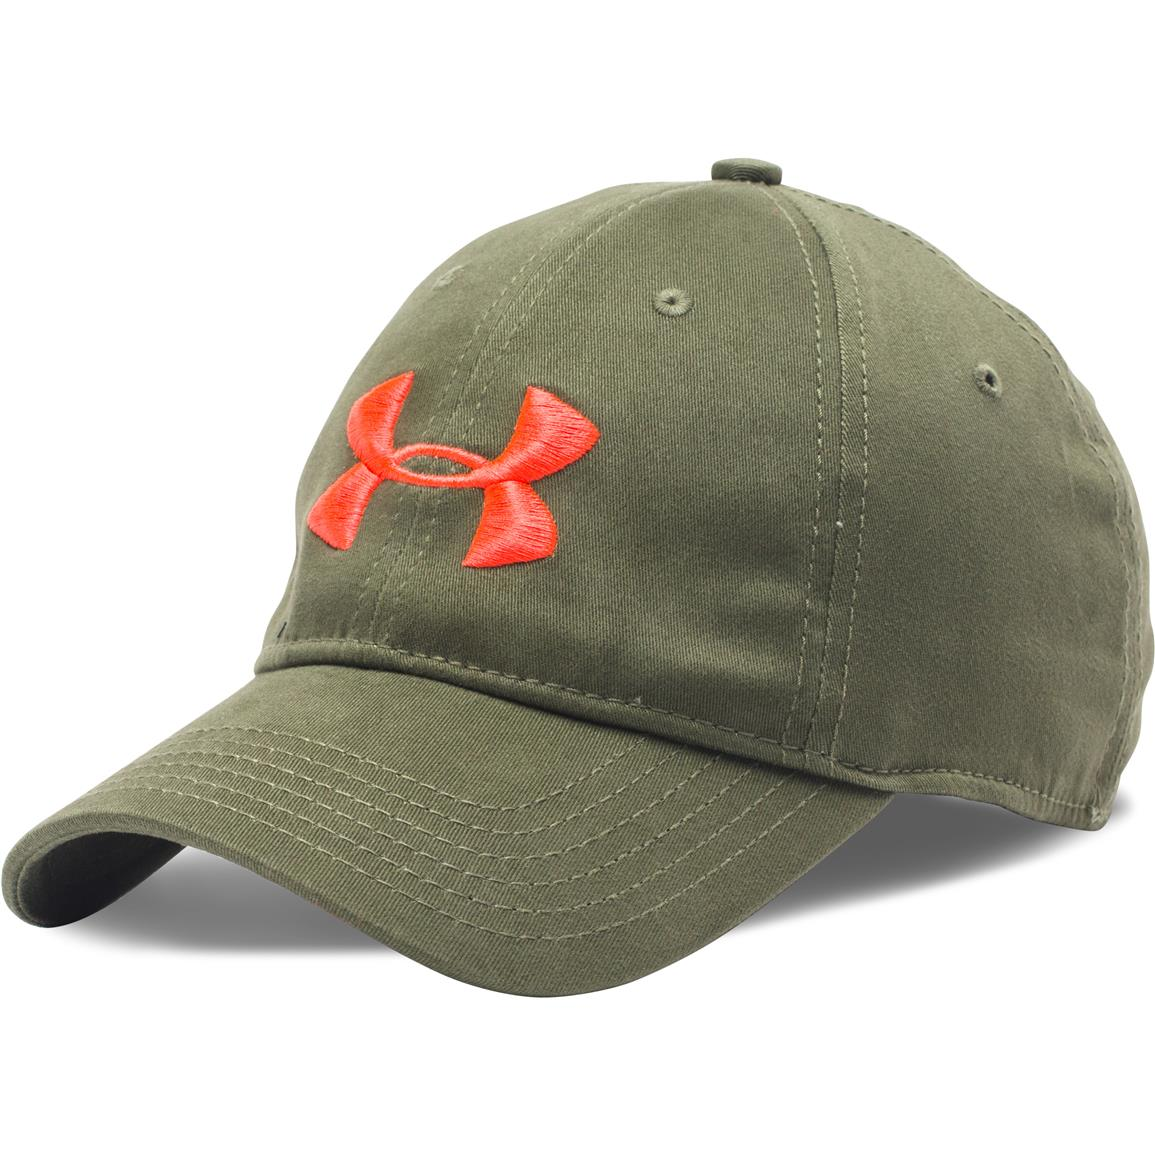 Under Armour Classic Outdoor Hat, Greenhead